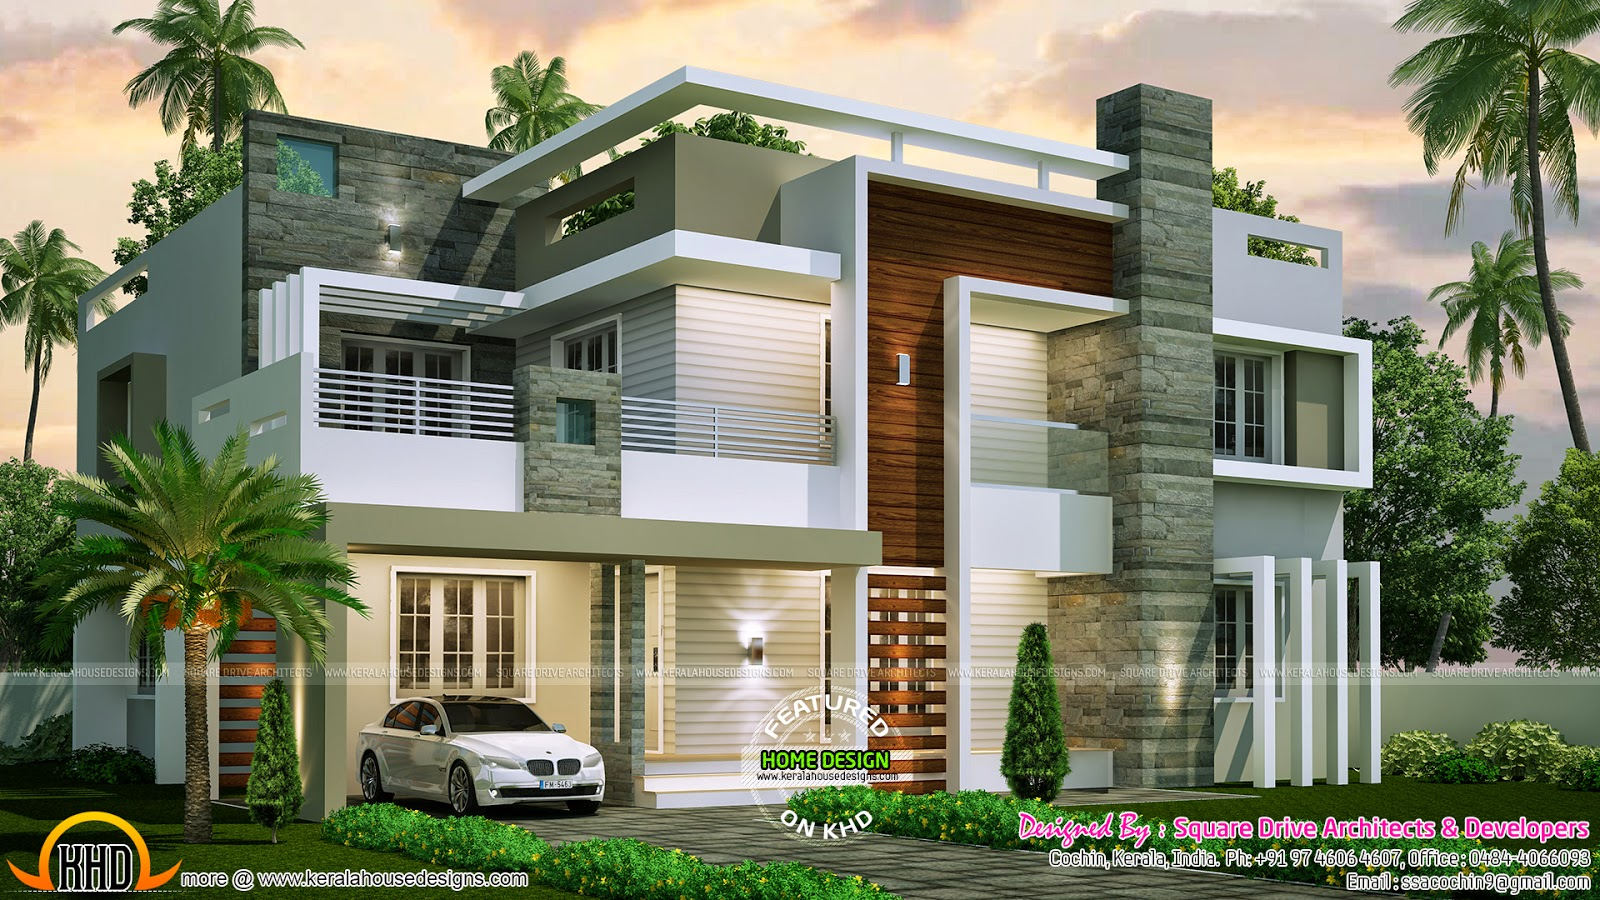 4 bedroom contemporary home design kerala home design for Home design pictures